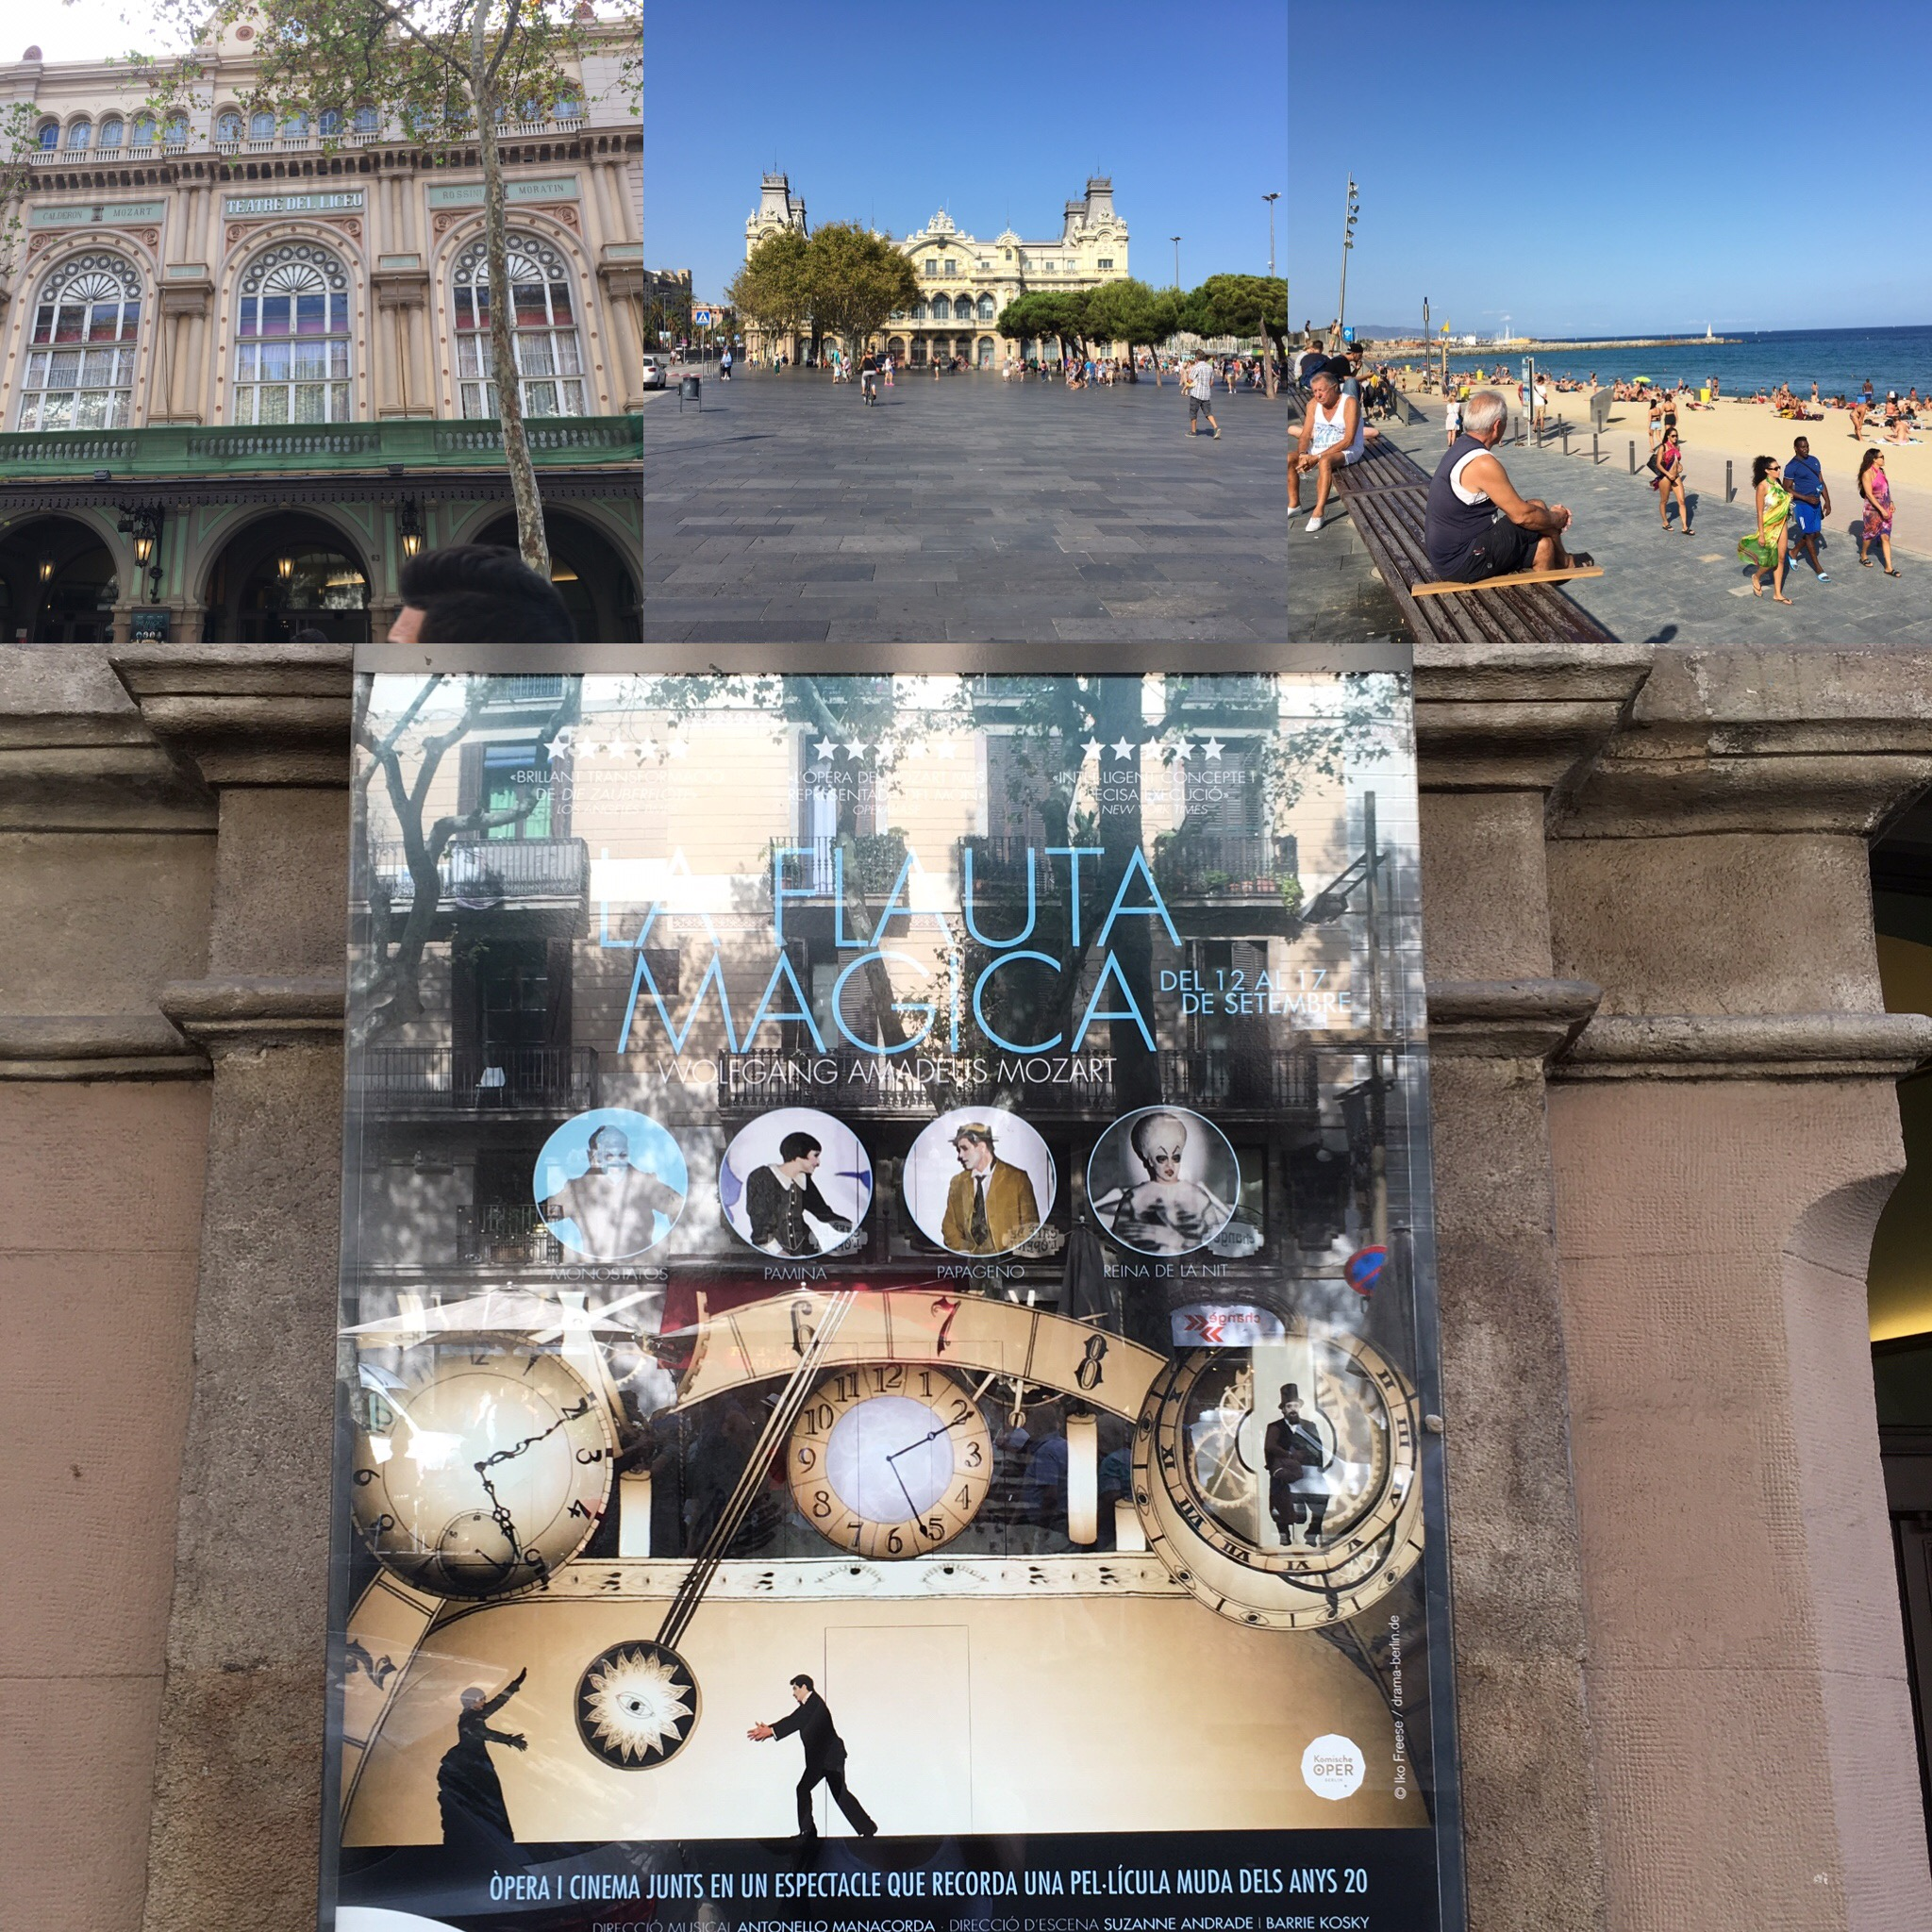 """A few photos from my first day, including the outside of the Liceu (upper left), the beach (I bet you can spot it), and the """"La Flauta Magica"""" poster."""